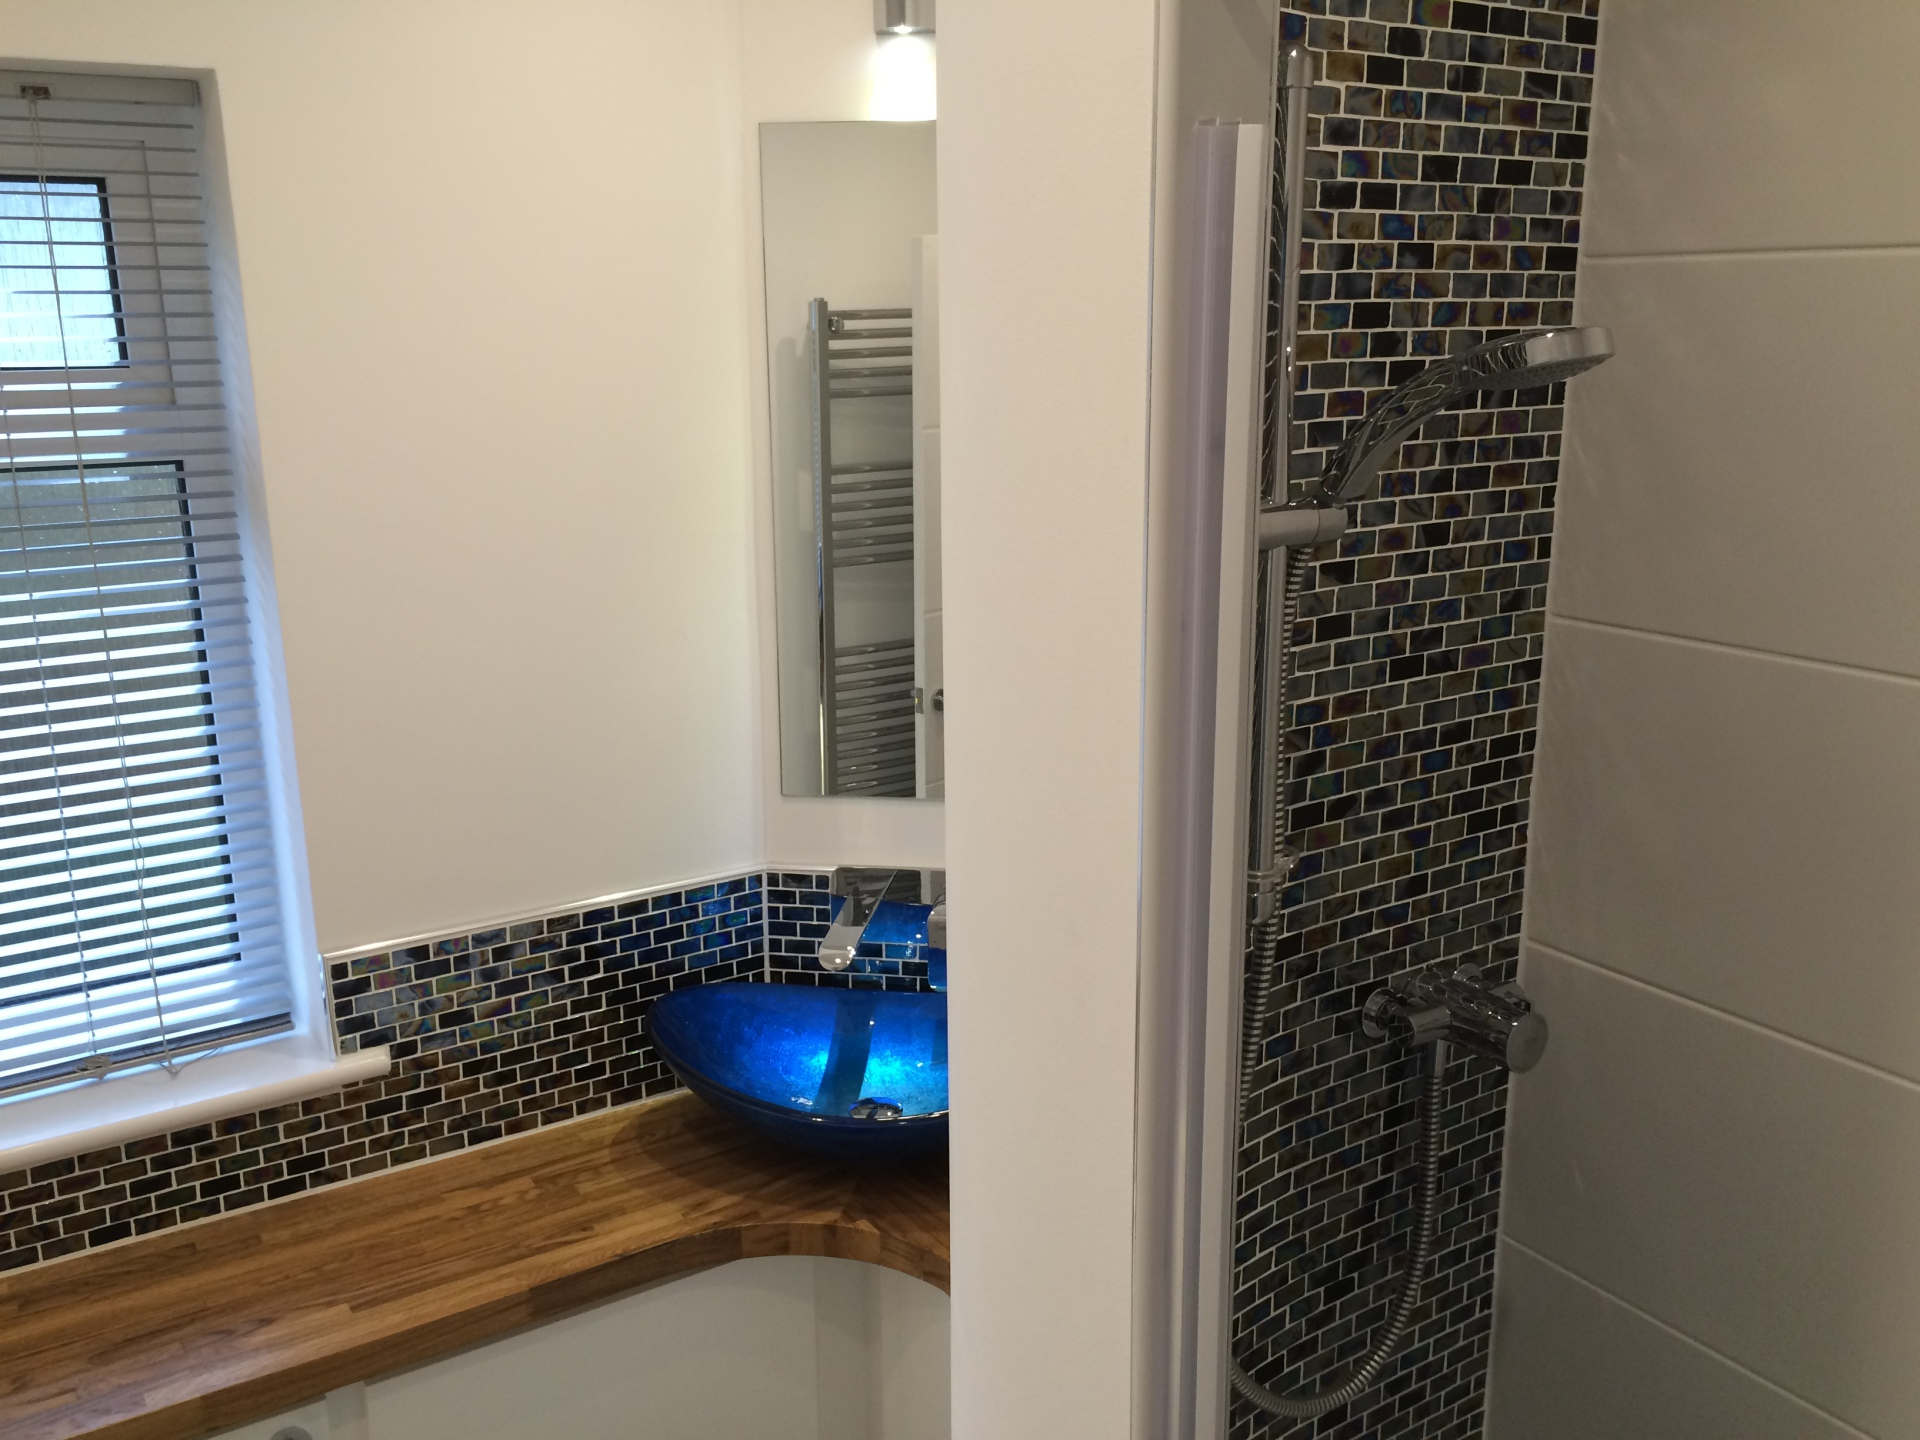 White painted bathroom with blue glass sink and oily glass mosaic tiles